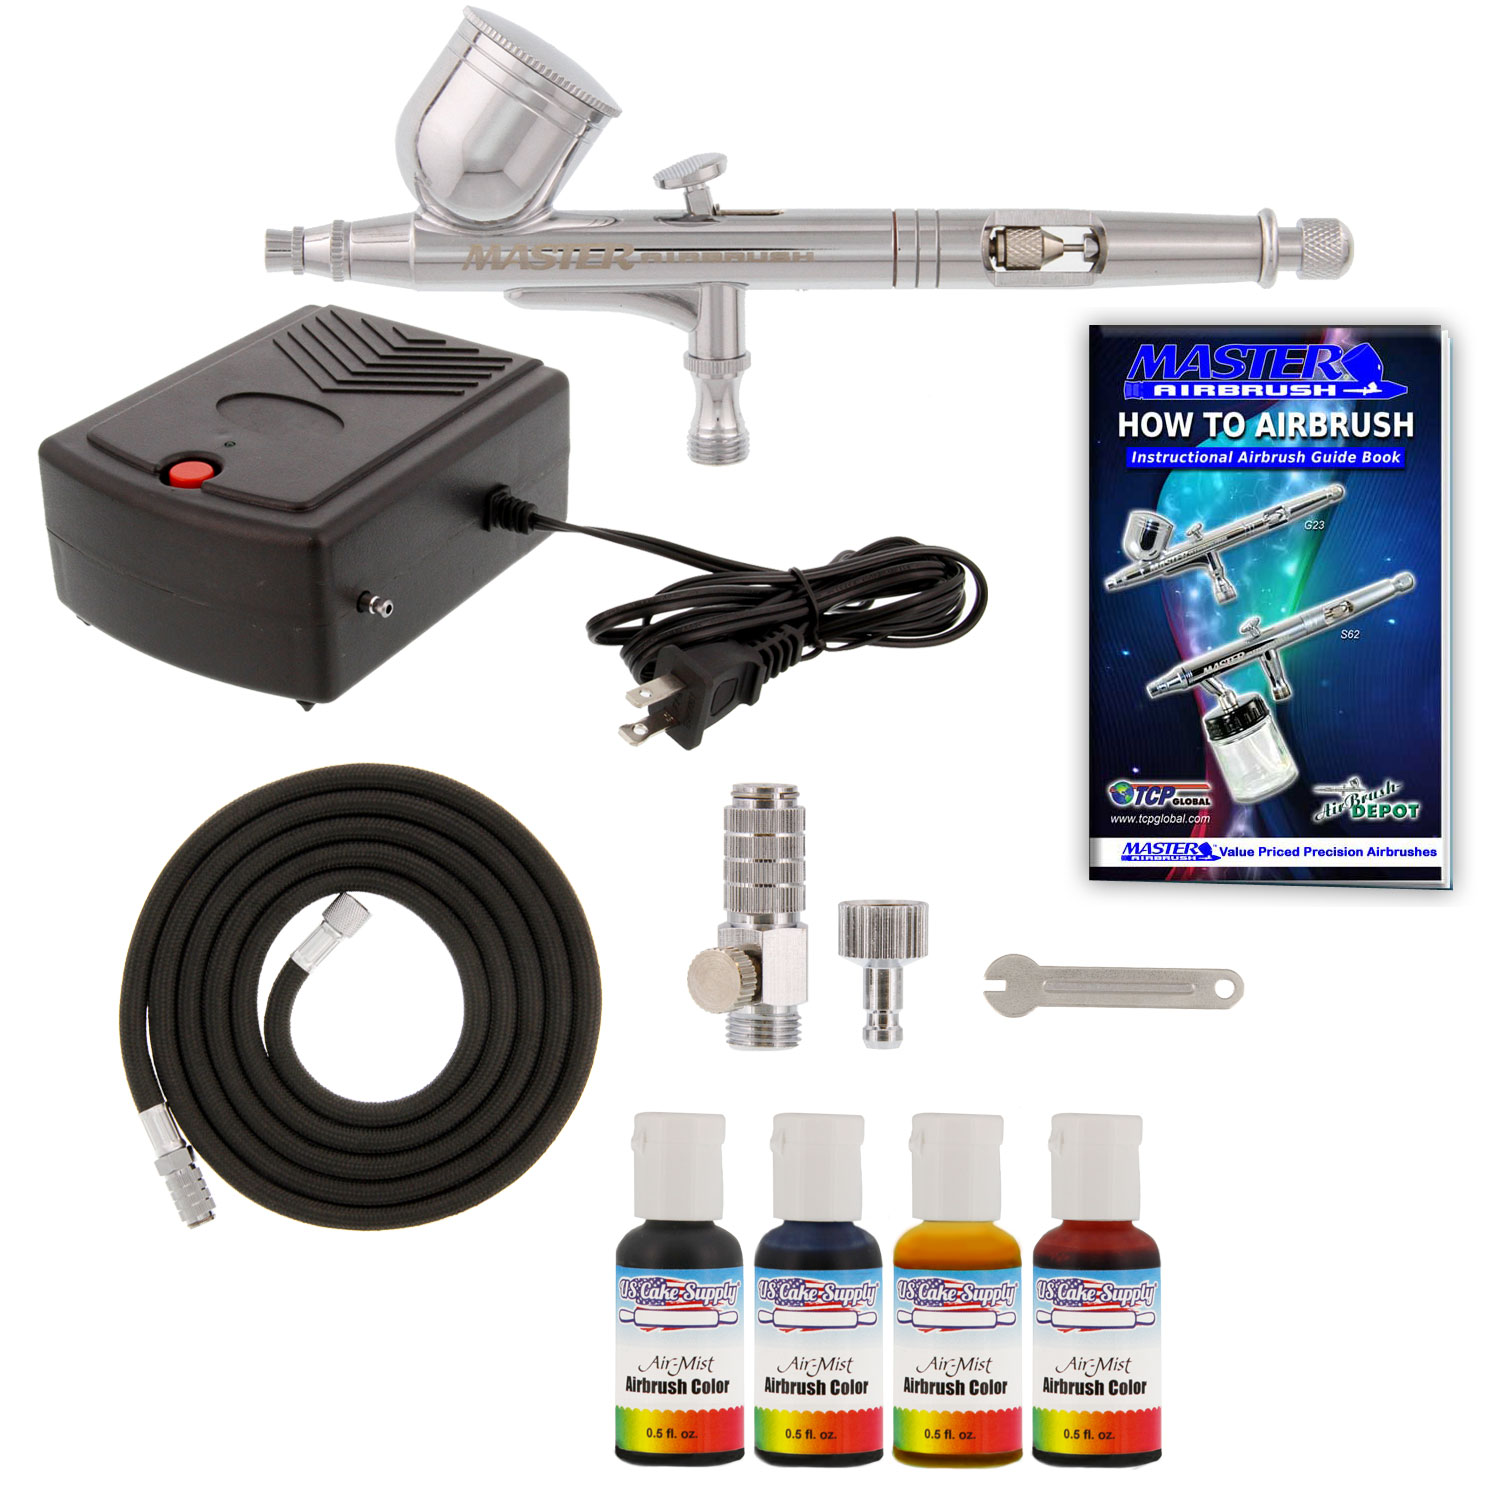 Complete Master Airbrush Cake Decorating Airbrush System : Complete Cake Decorating Airbrush System KIT W Food Color ...